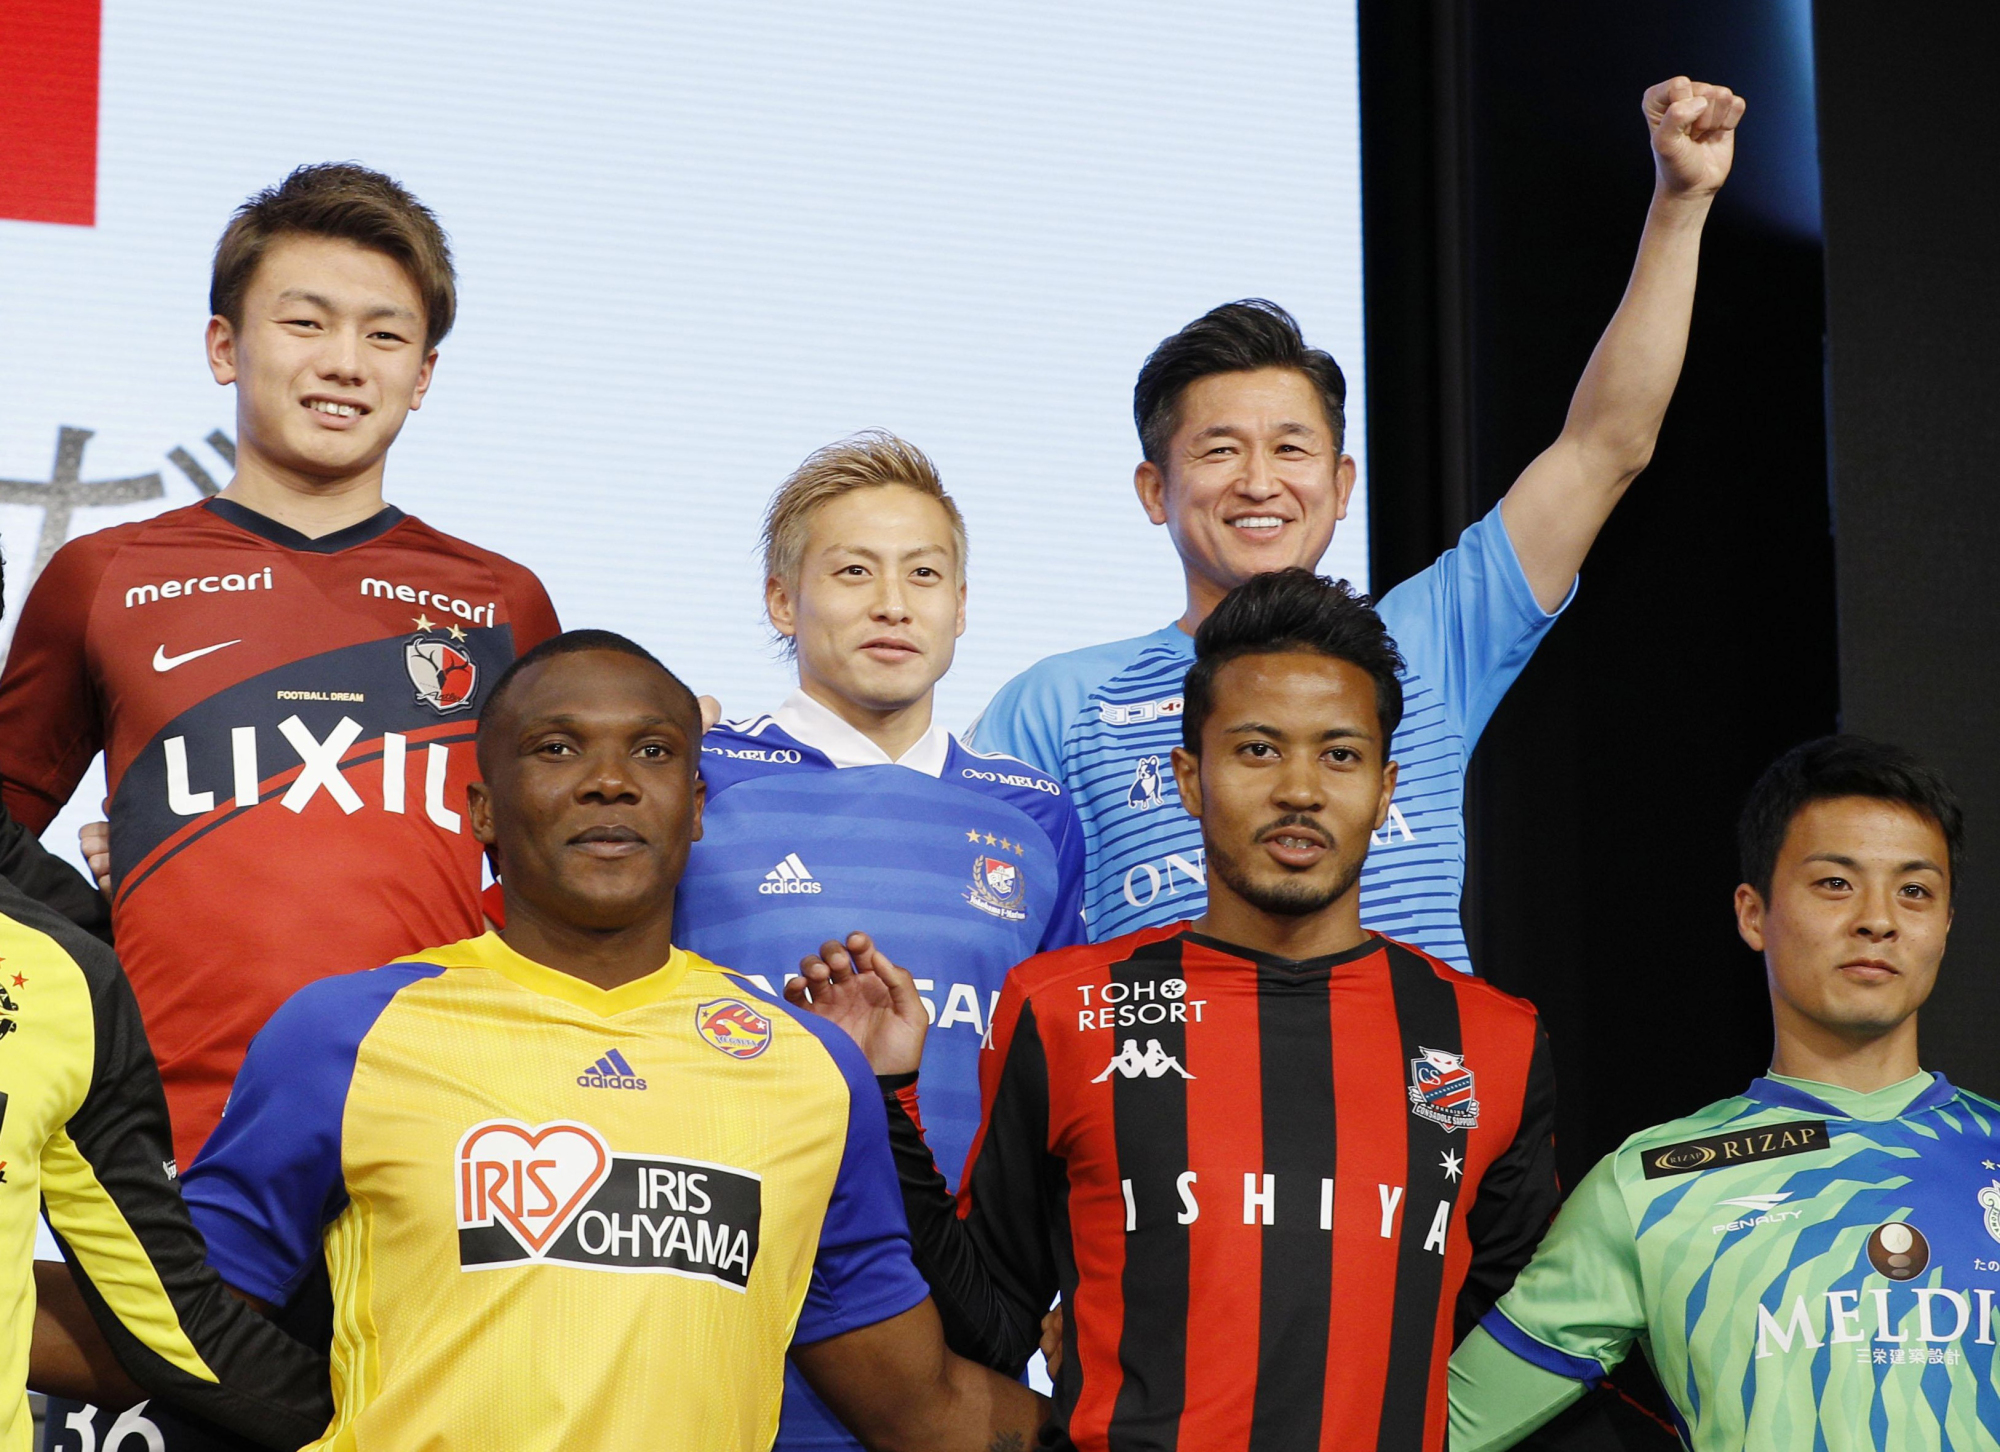 Kazuyoshi Miura of the Yokohama FC (top right) poses with other J. League players during a photo session at the J. League Kickoff Conference on Friday at a Tokyo hotel. | KYODO